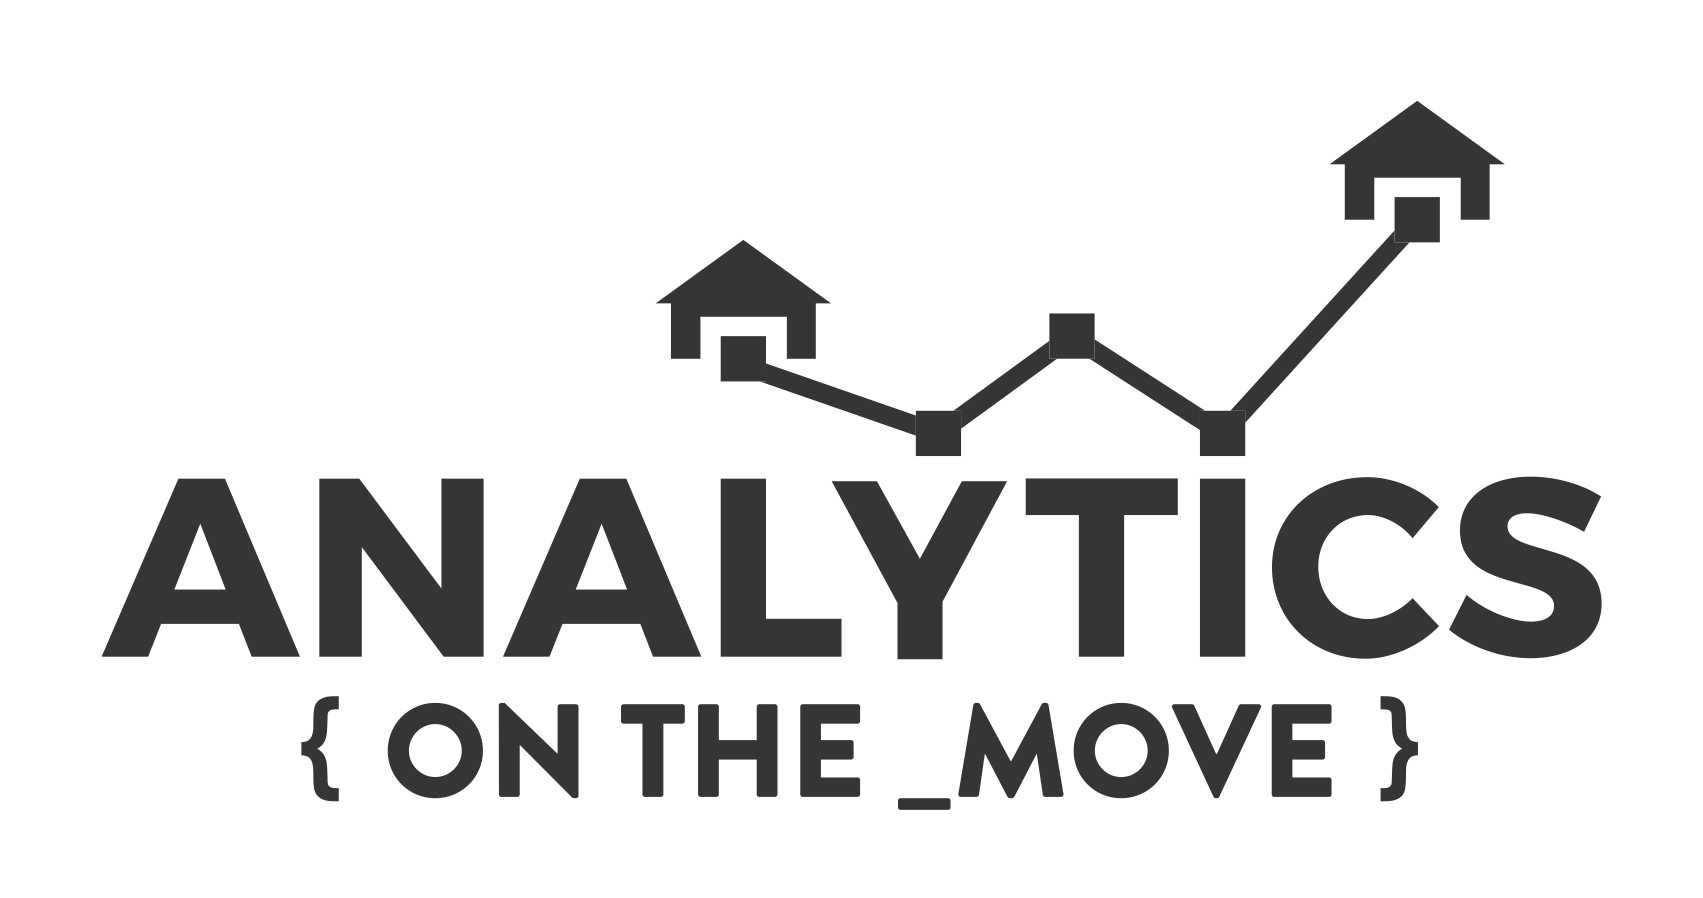 Mission-Driven Data Analytics Consultancy Looking For Something That Wows!